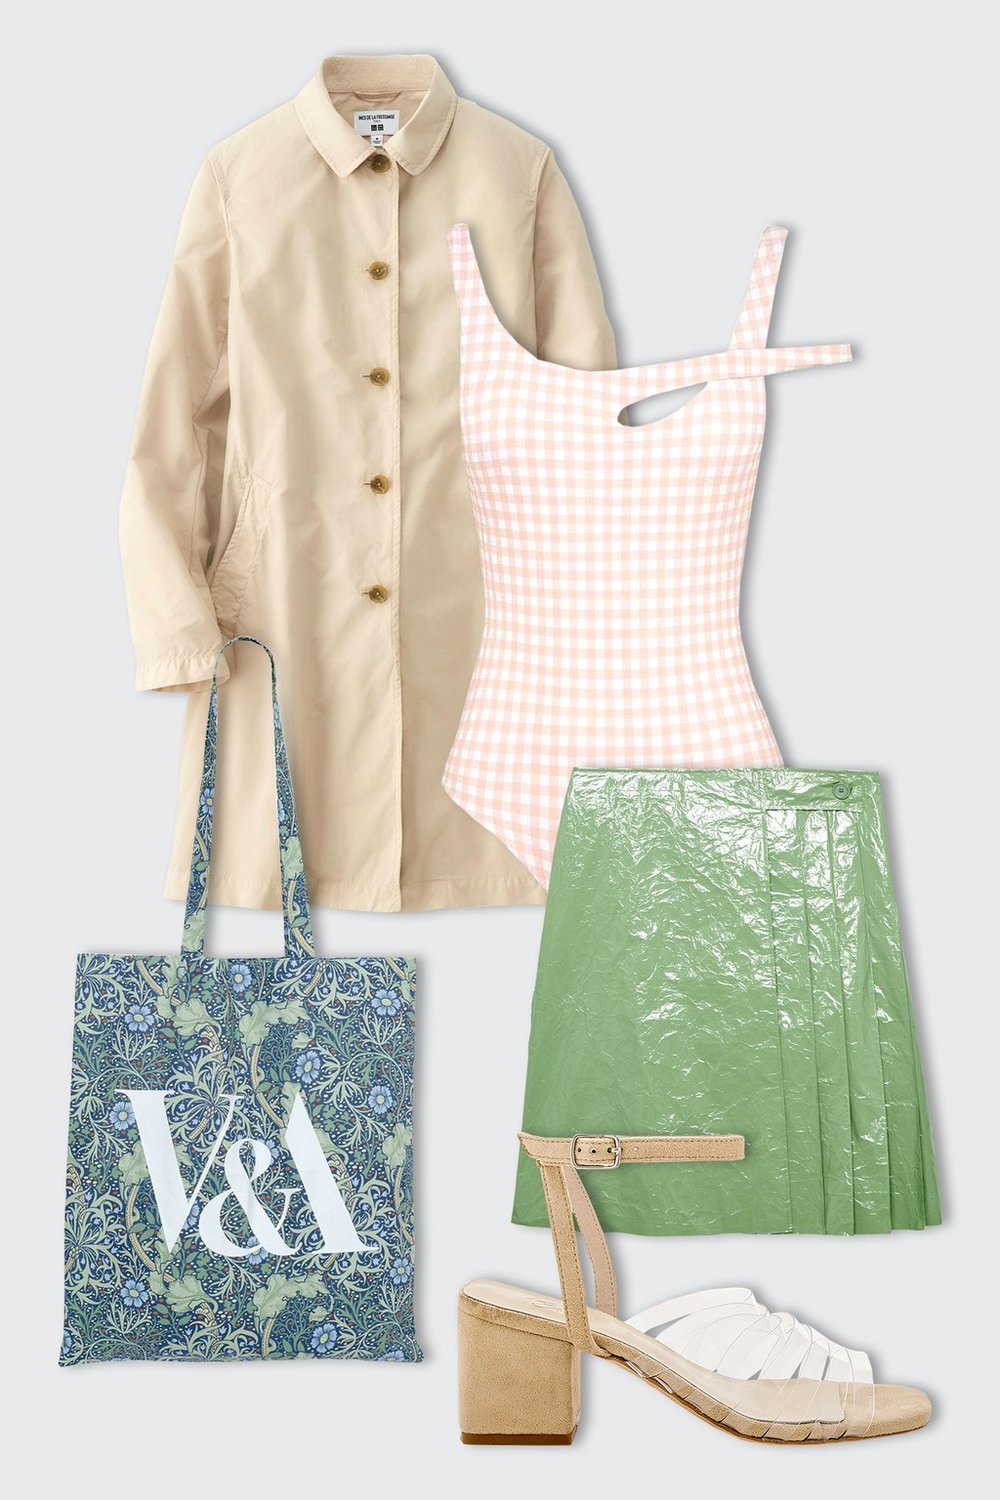 Build an outfit around a particular swim trend—for instance: Unexpected cutouts and silhouettes allow for some pretty inventive, arty outfits... Pair a checked one-piece with a patent mini skirt in a complimentary hue. Throw on some clear sandals and a printed tote, and you're good to go.  Skye & Staghorn Isodore Full Piece, $61.23,  Skye & Staghorn ; Uniqlo Women IDLF Soutien Collar Coat, $49.90,  Uniqlo ; COS Coated Crinkle Pleated Wrap Skirt, $135,  COS ; Dr. Martens Vibal Sandal, $105,  REVOLVE ; V&A Seaweed Tote Bag, $11.41,  V&A Shop